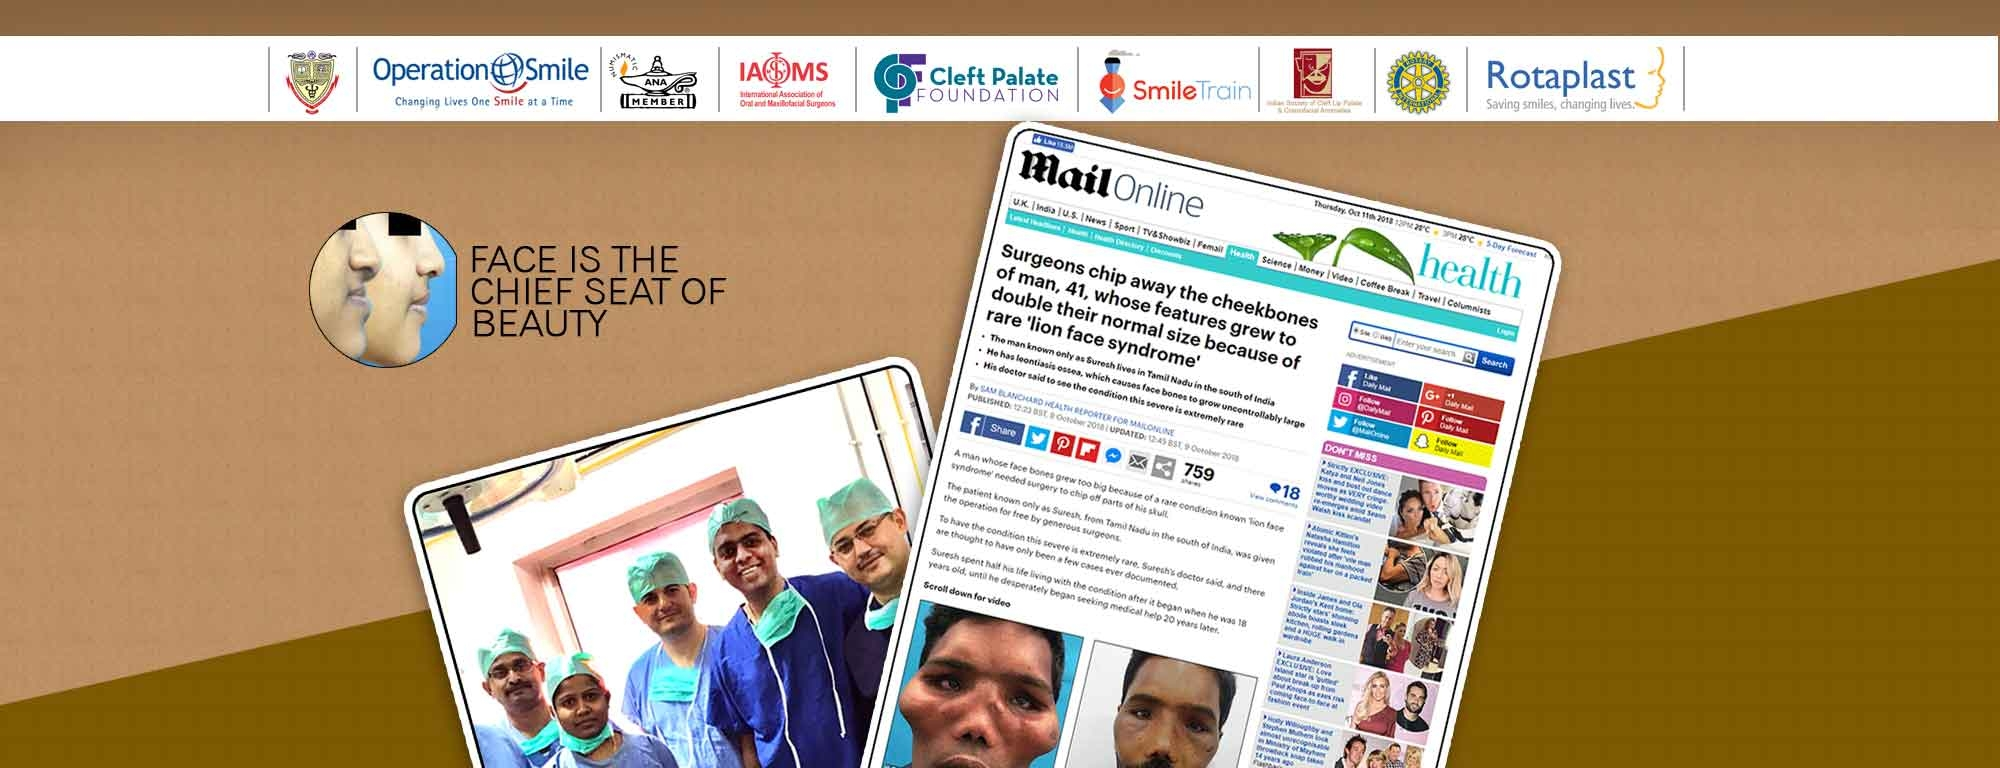 (@rdchospital) Cover Image